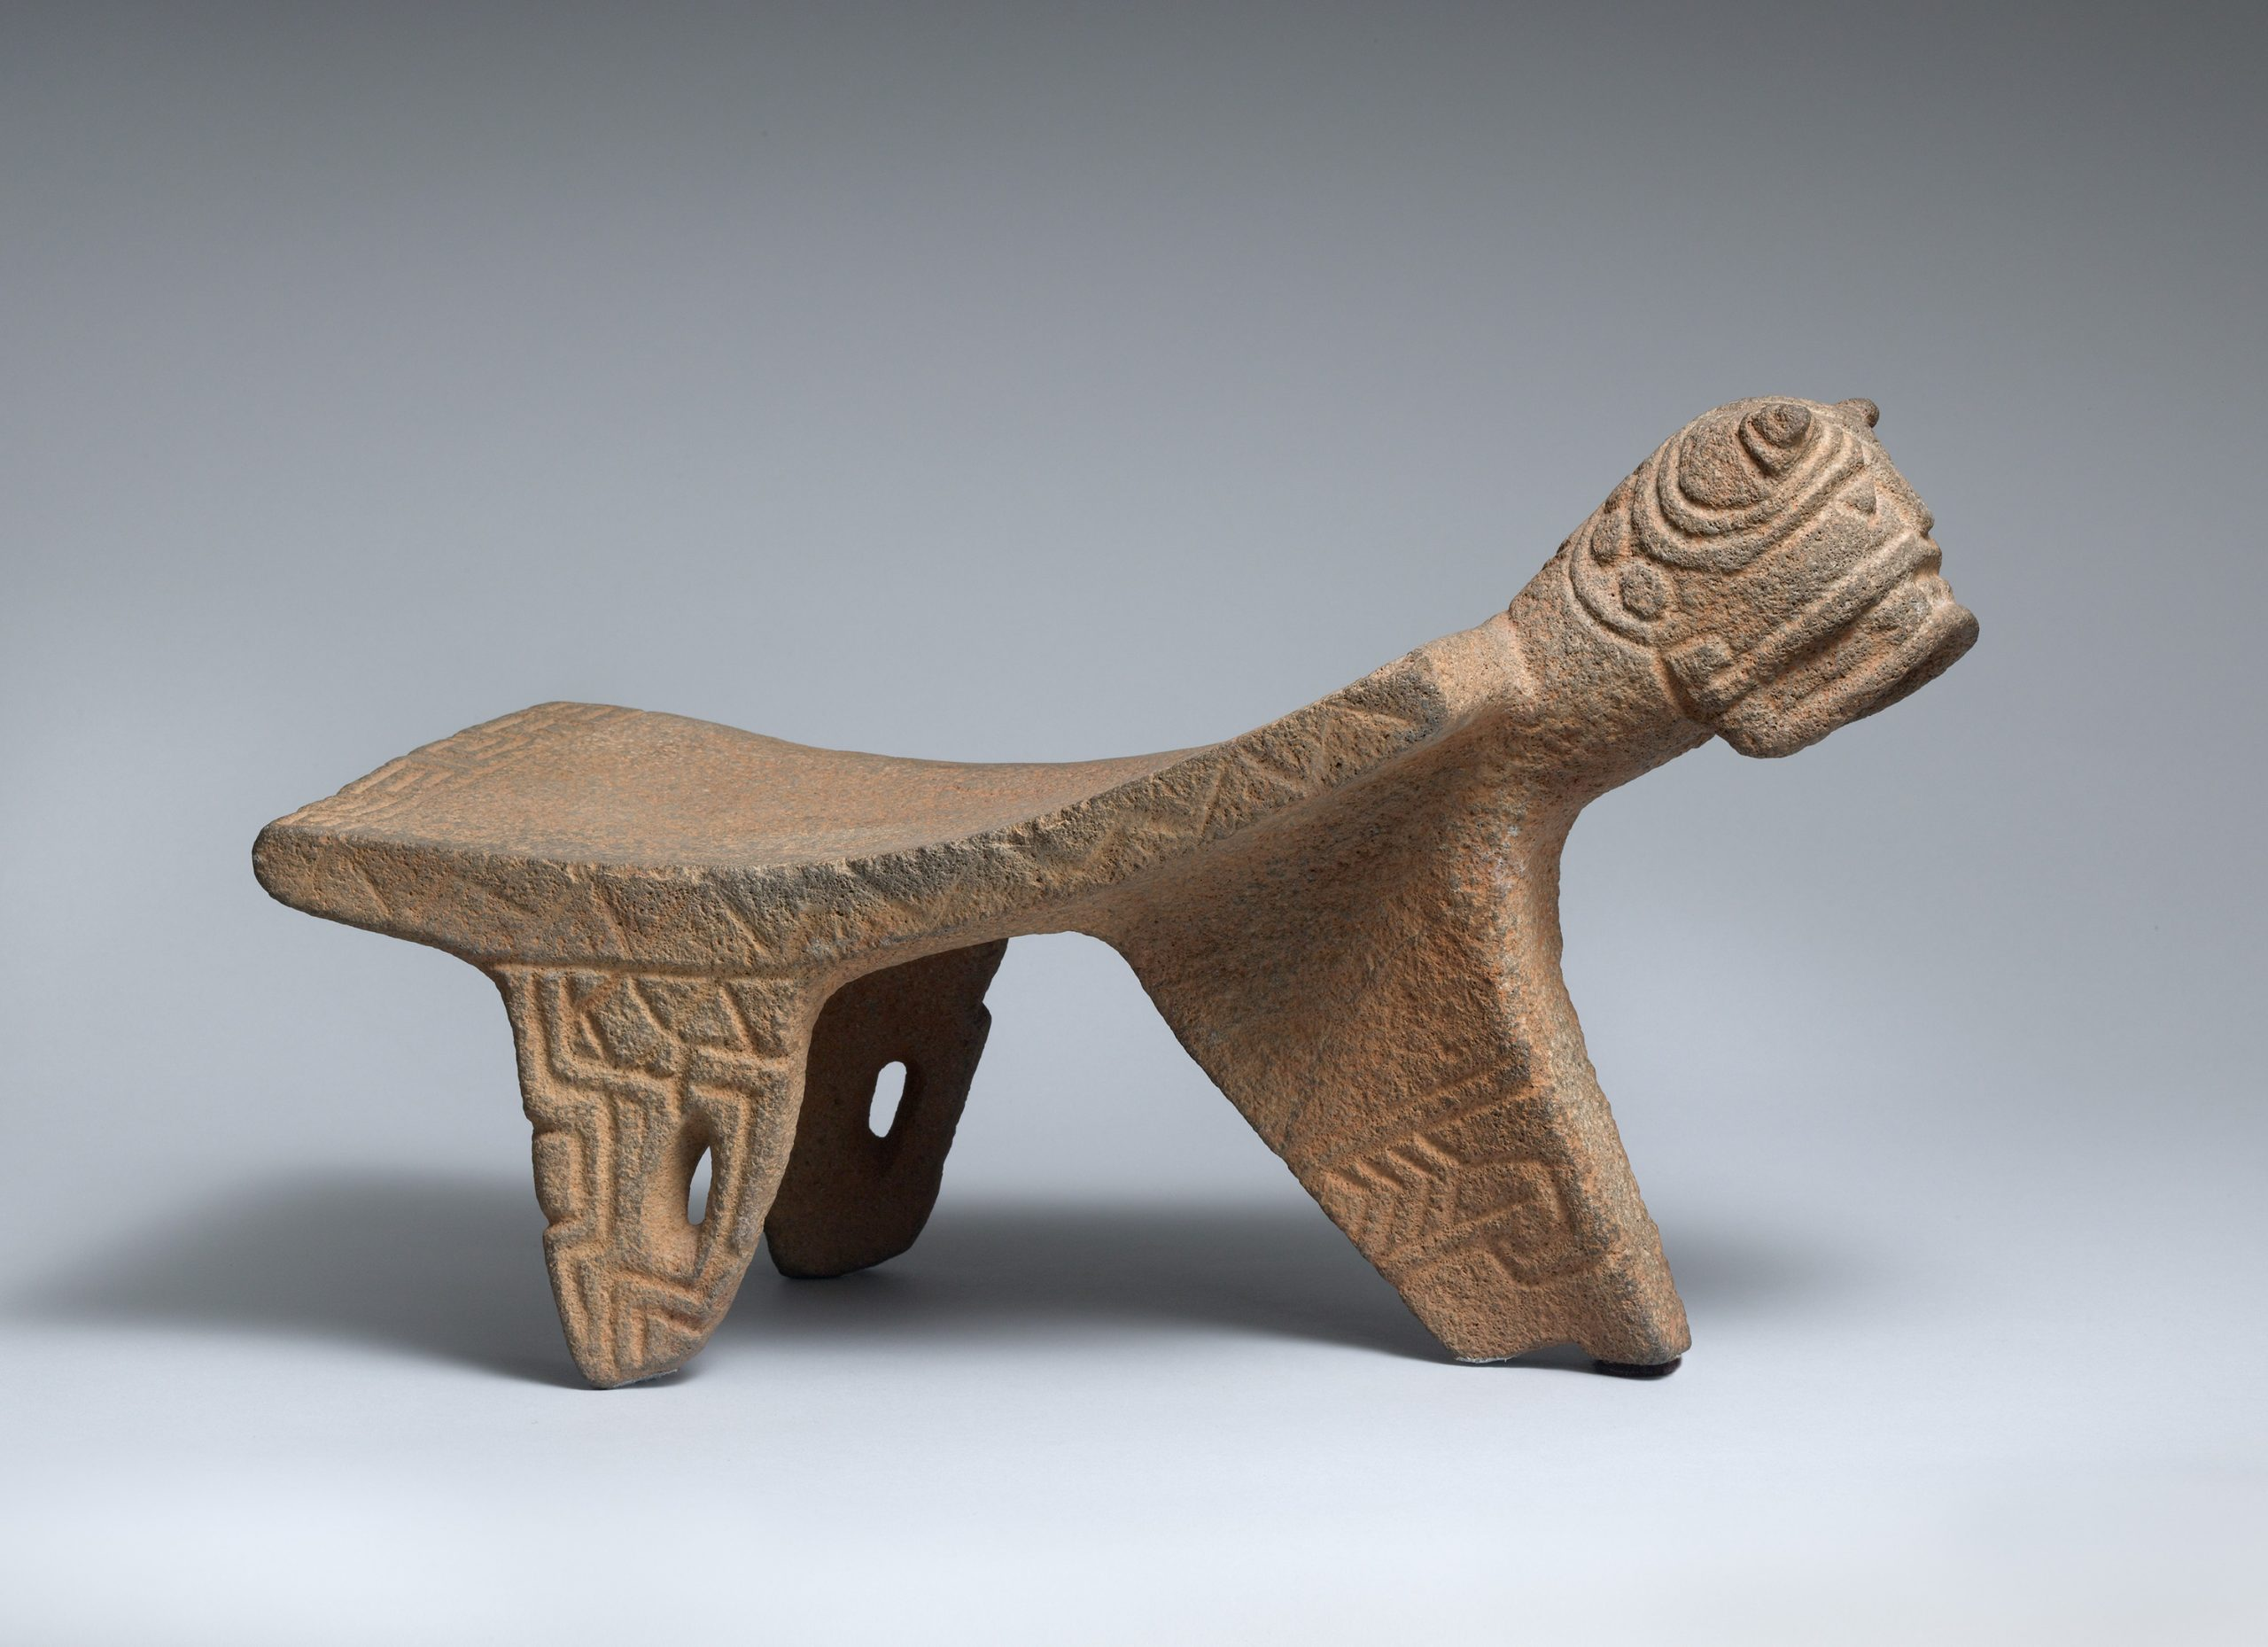 Stone metate carved to resemble a jaguar.